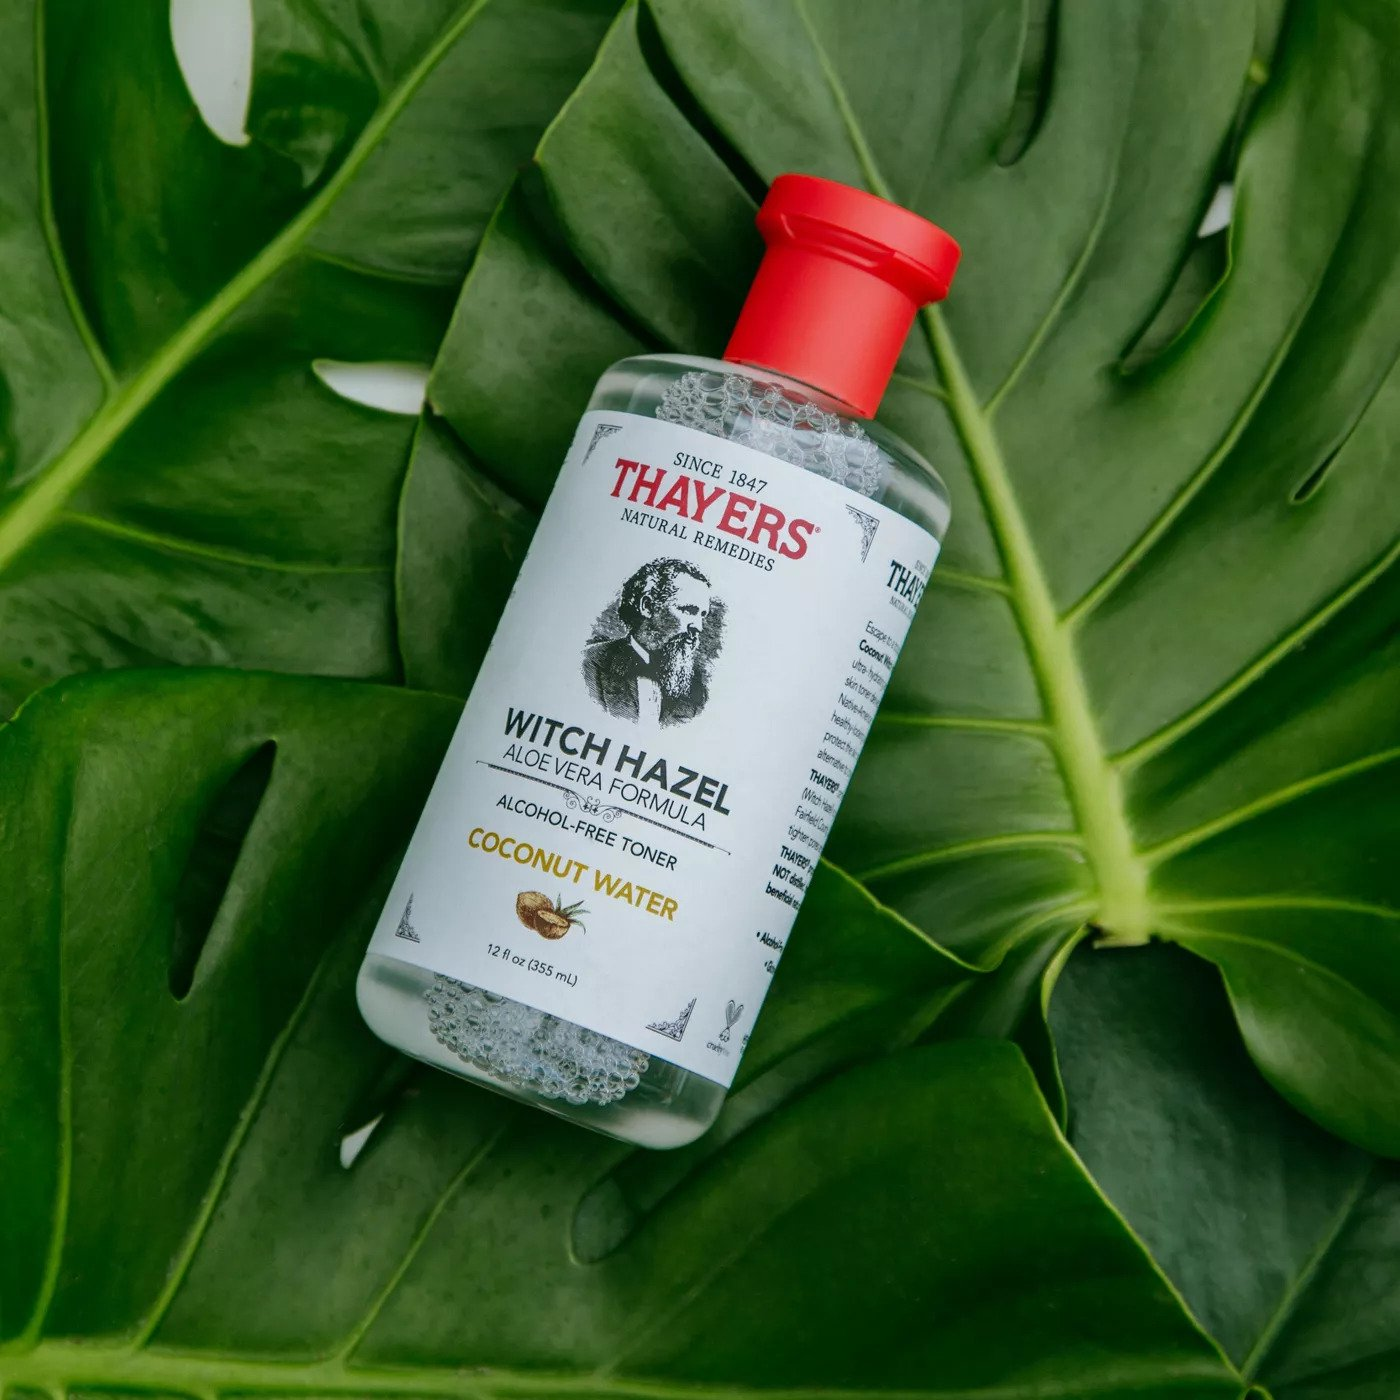 Thayers Witch Hazel Alcohol-Free Coconut Water Toner